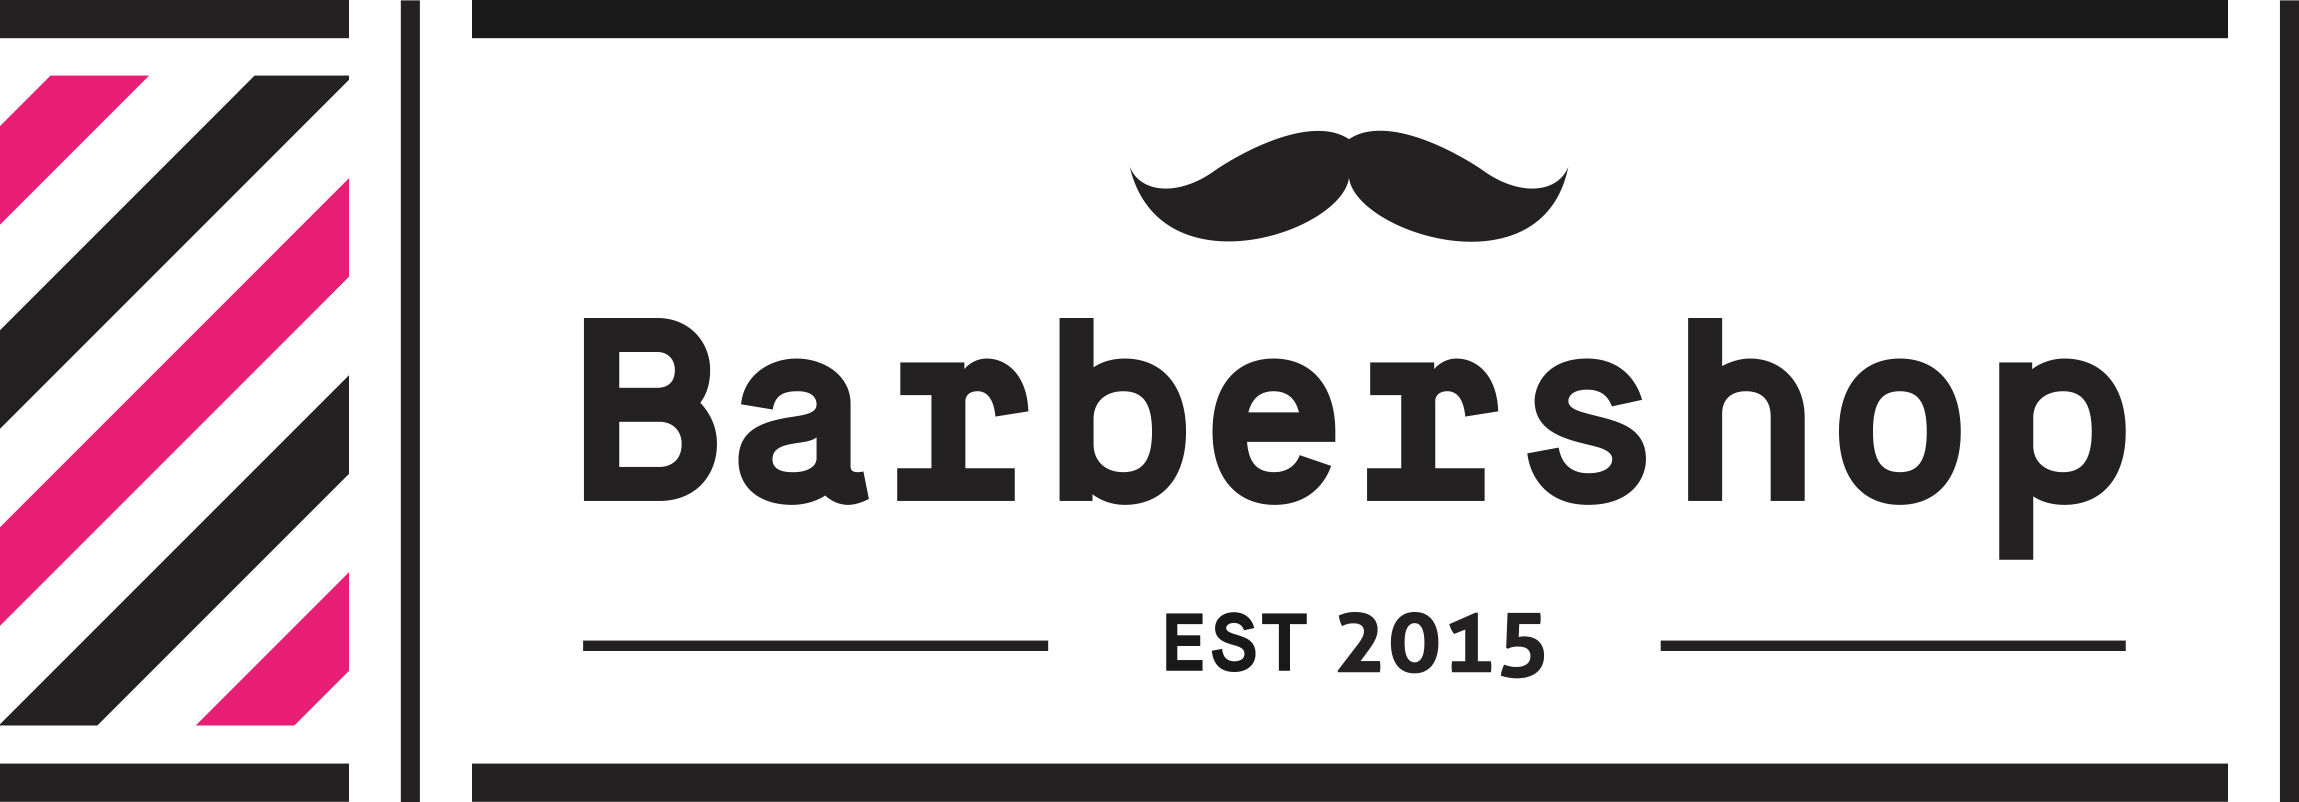 The Barbershop Logo